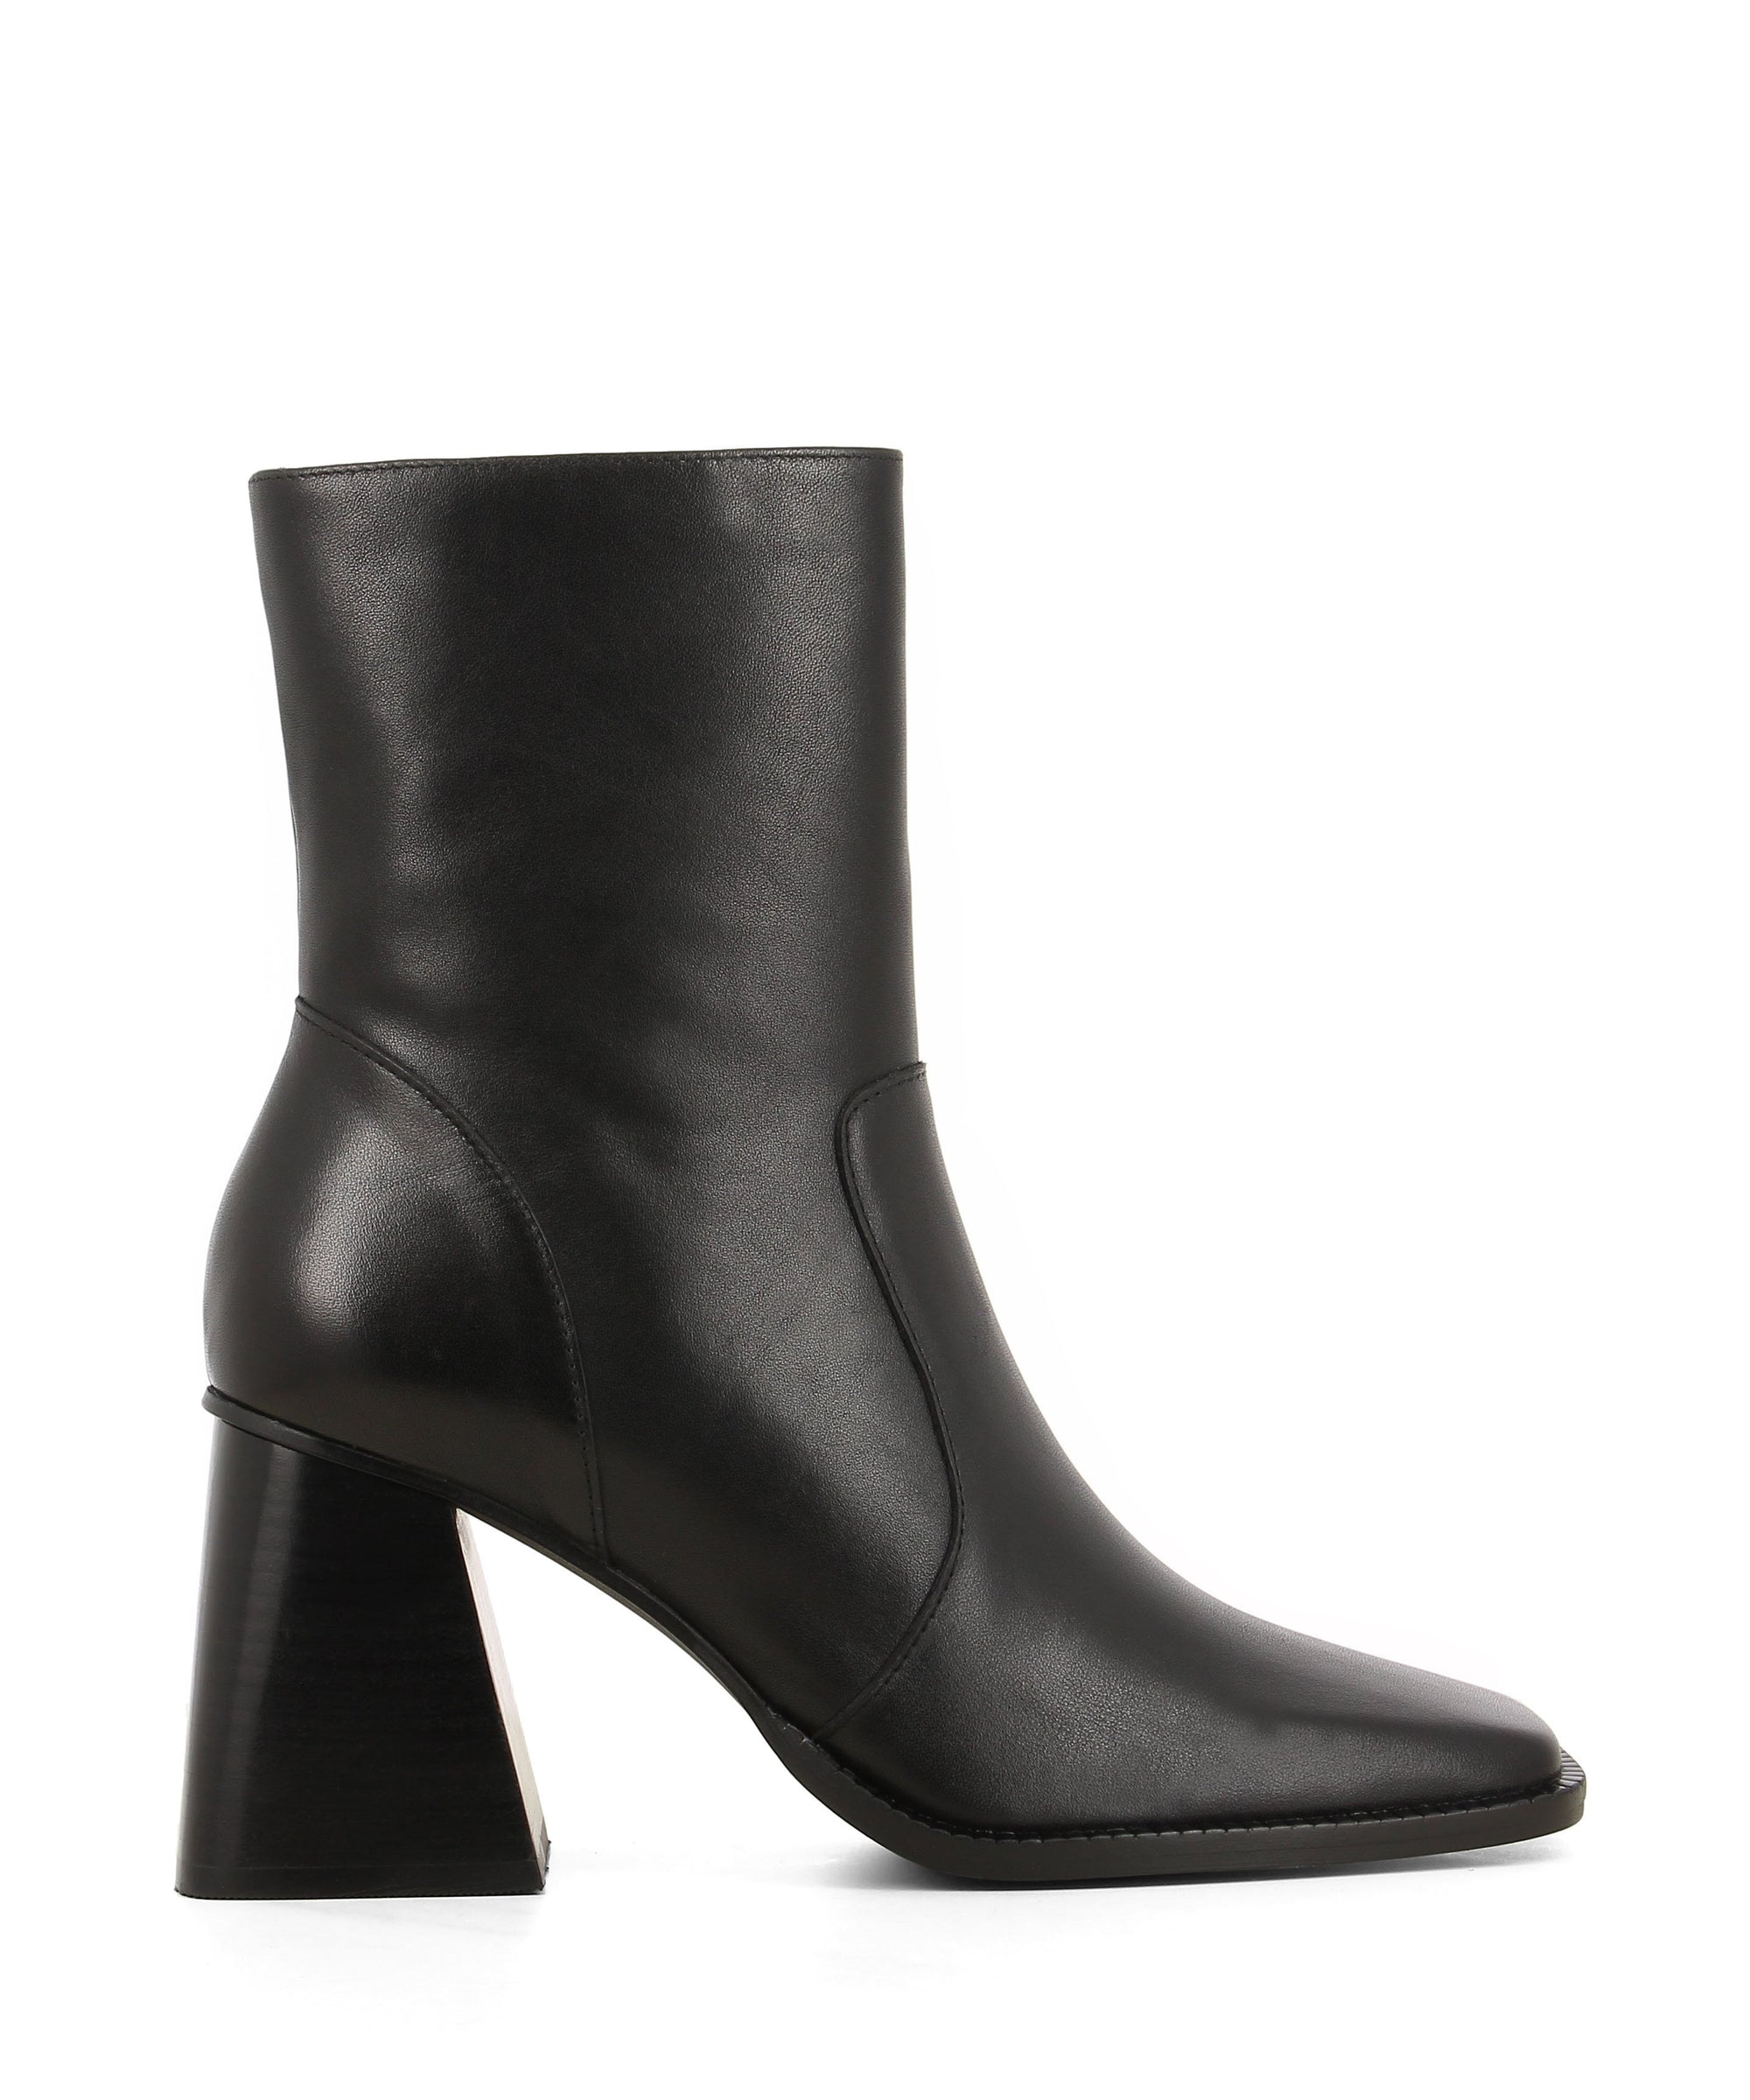 Black leather ankle boots featuring zipper fastenings, a flared block heel and a square toe by 2 Baia Vista.